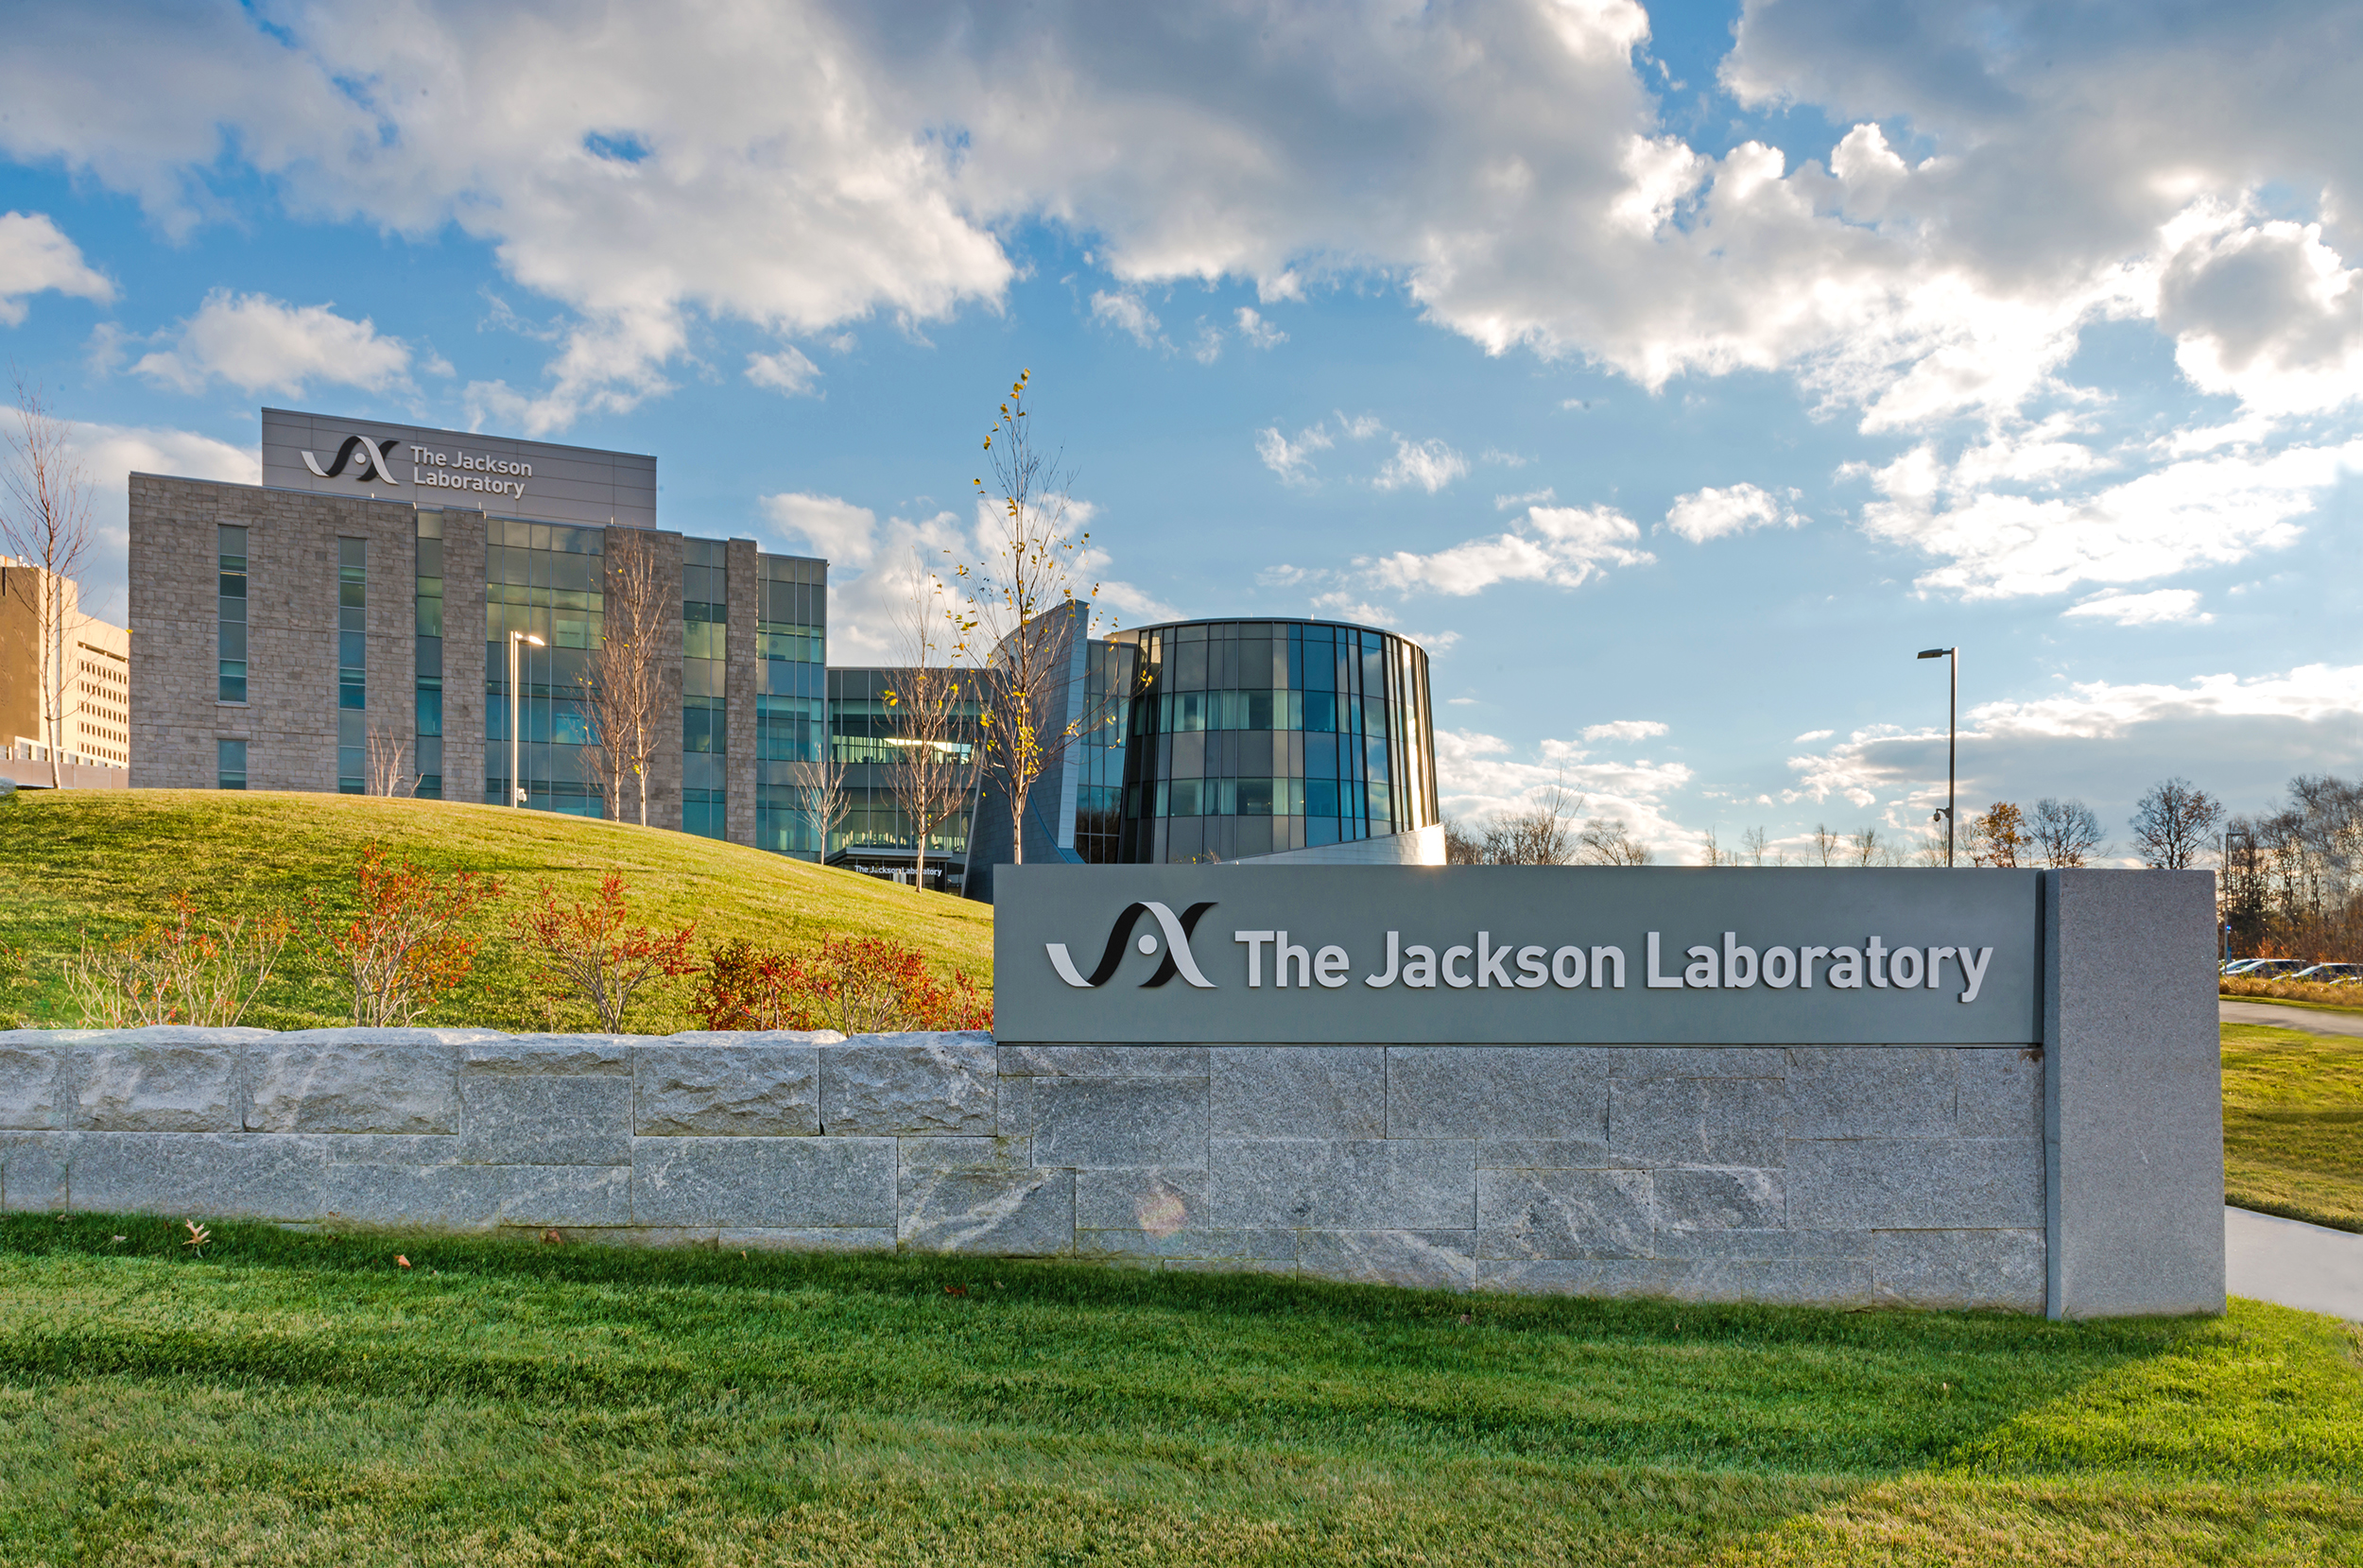 JacksonLabs-41_edit2-med.jpg